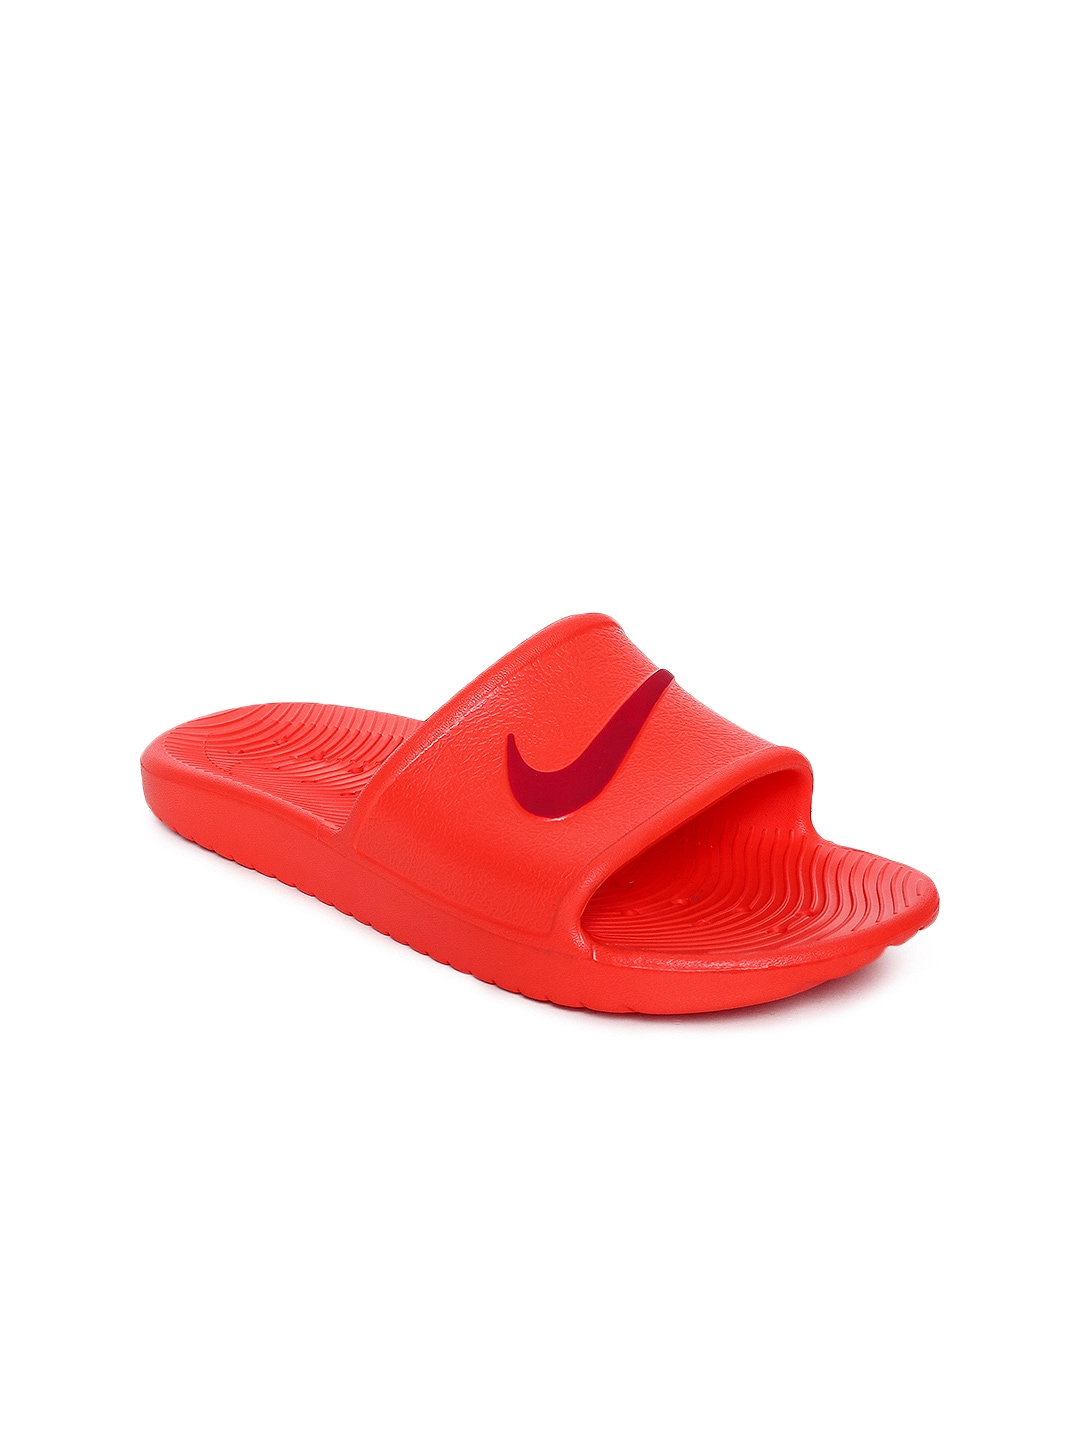 29ff3a413ef Nike Flip-Flops - Buy Nike Flip-Flops for Men Women Online